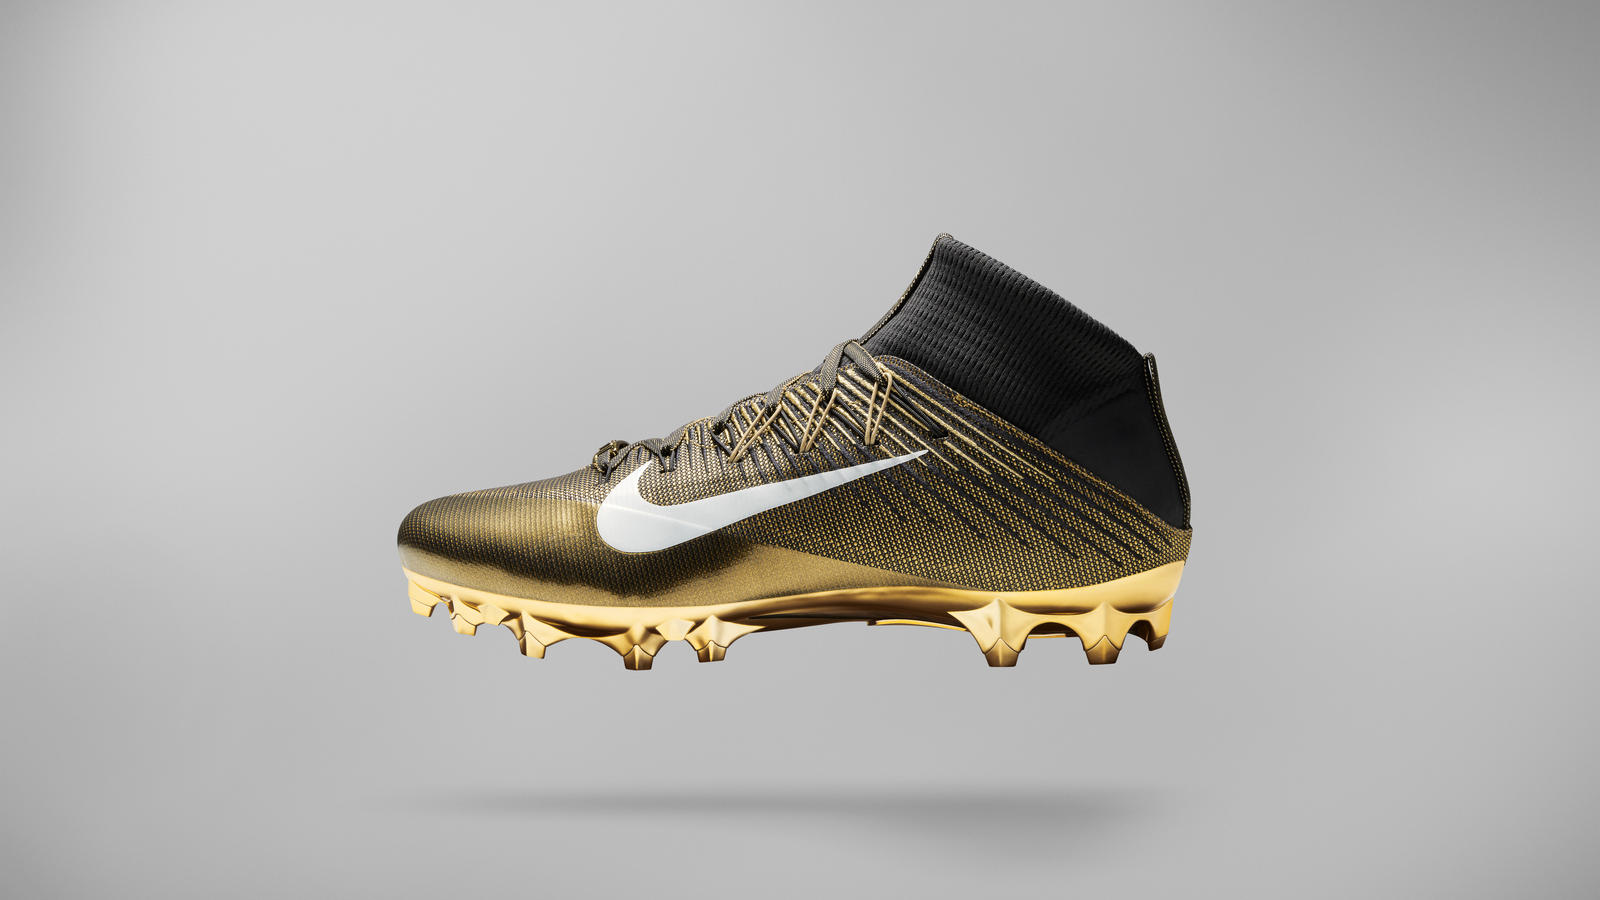 Ho15 Nfb Vapor Untouchable Cleat Na Lat 824470 097